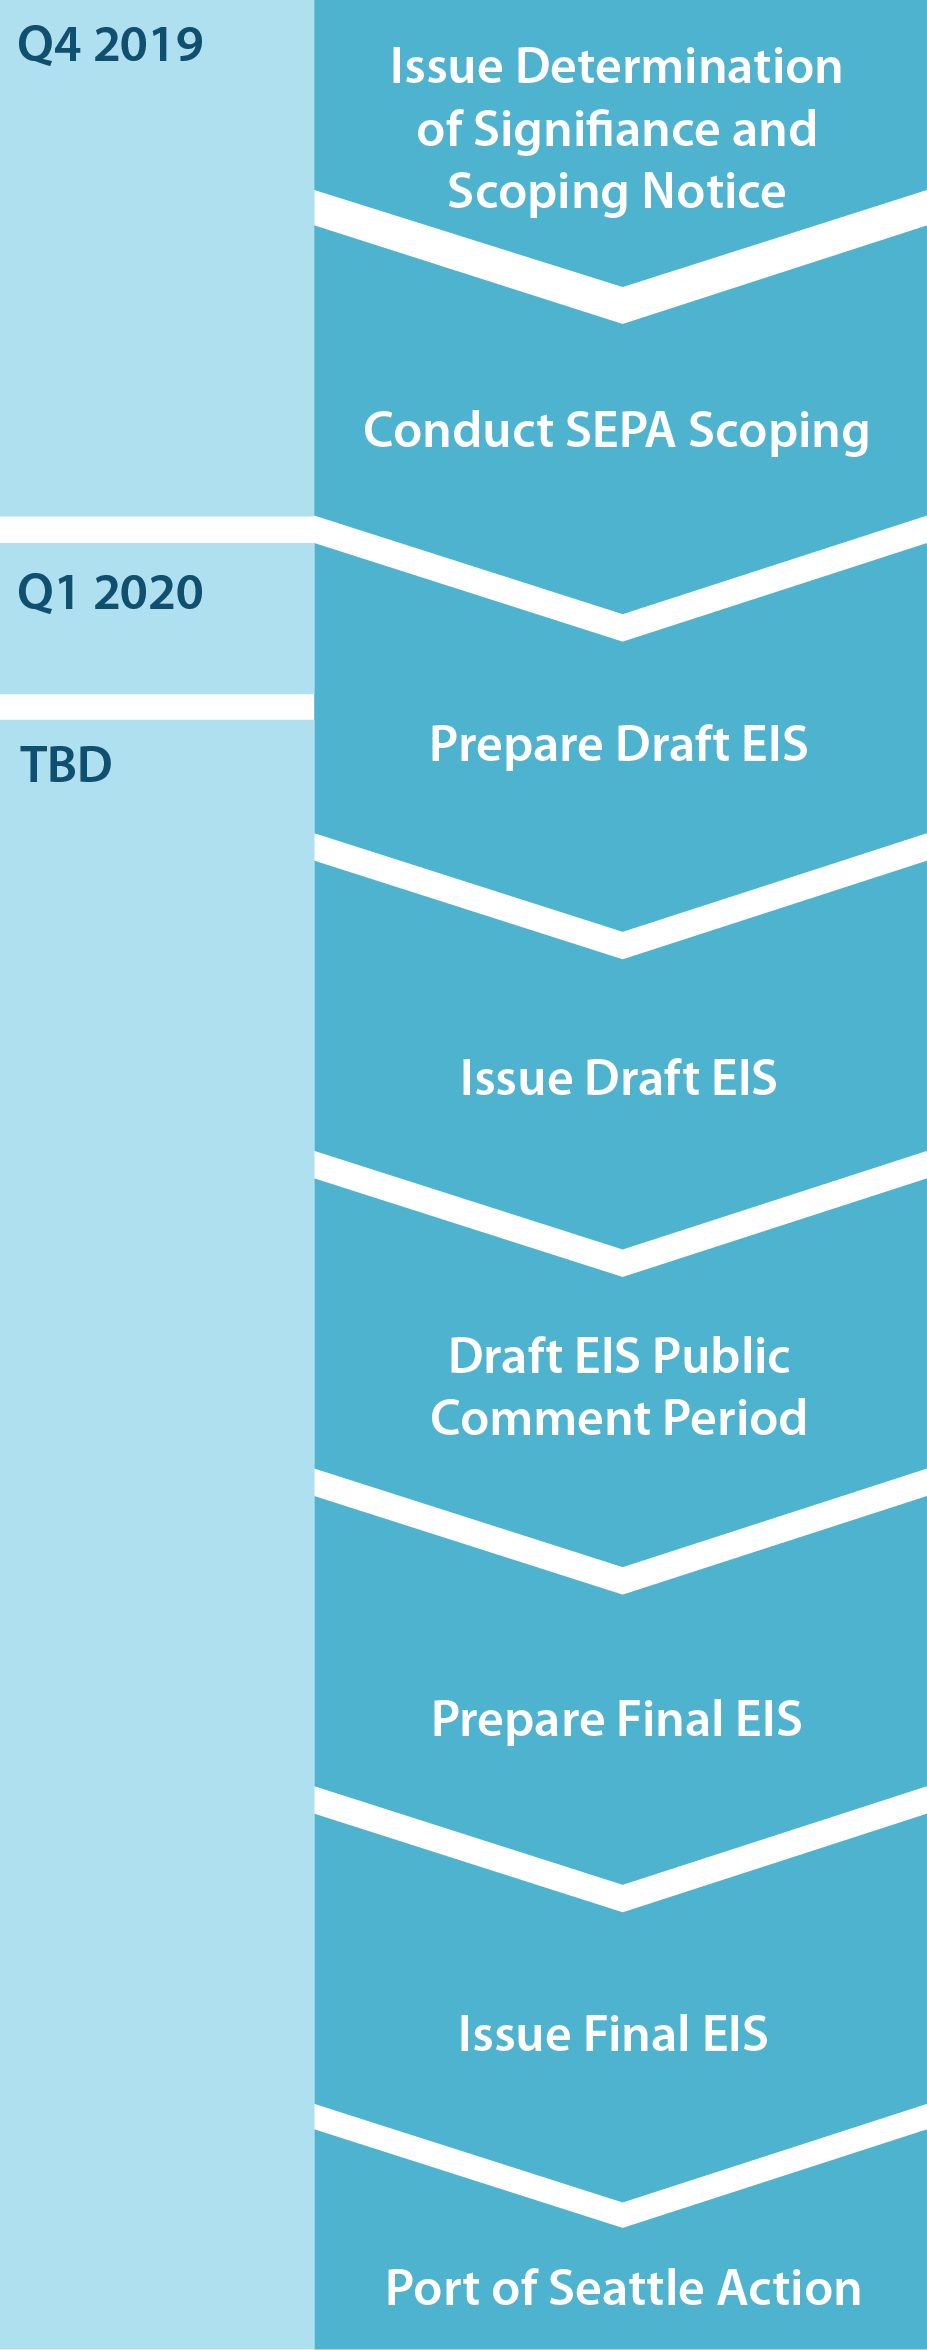 "Flowchart graphic showing the timeline of the SEPA Environmental Impact Statement process by quarter and year, beginning in Q4 2019 and ending in Q2 2020 with the following steps: Issue Determination of Significance & Scoping Notice, Conduct SEPA Scoping, Prepare Draft EIS, Issue Draft EIS, DRAFT EIS Public Comment Period, Prepare Final EIS, Issue Final EIS, NWSA Action. Red star labeled ""We are here"" indicates that we are in the Conducting SEPA Scoping phase."